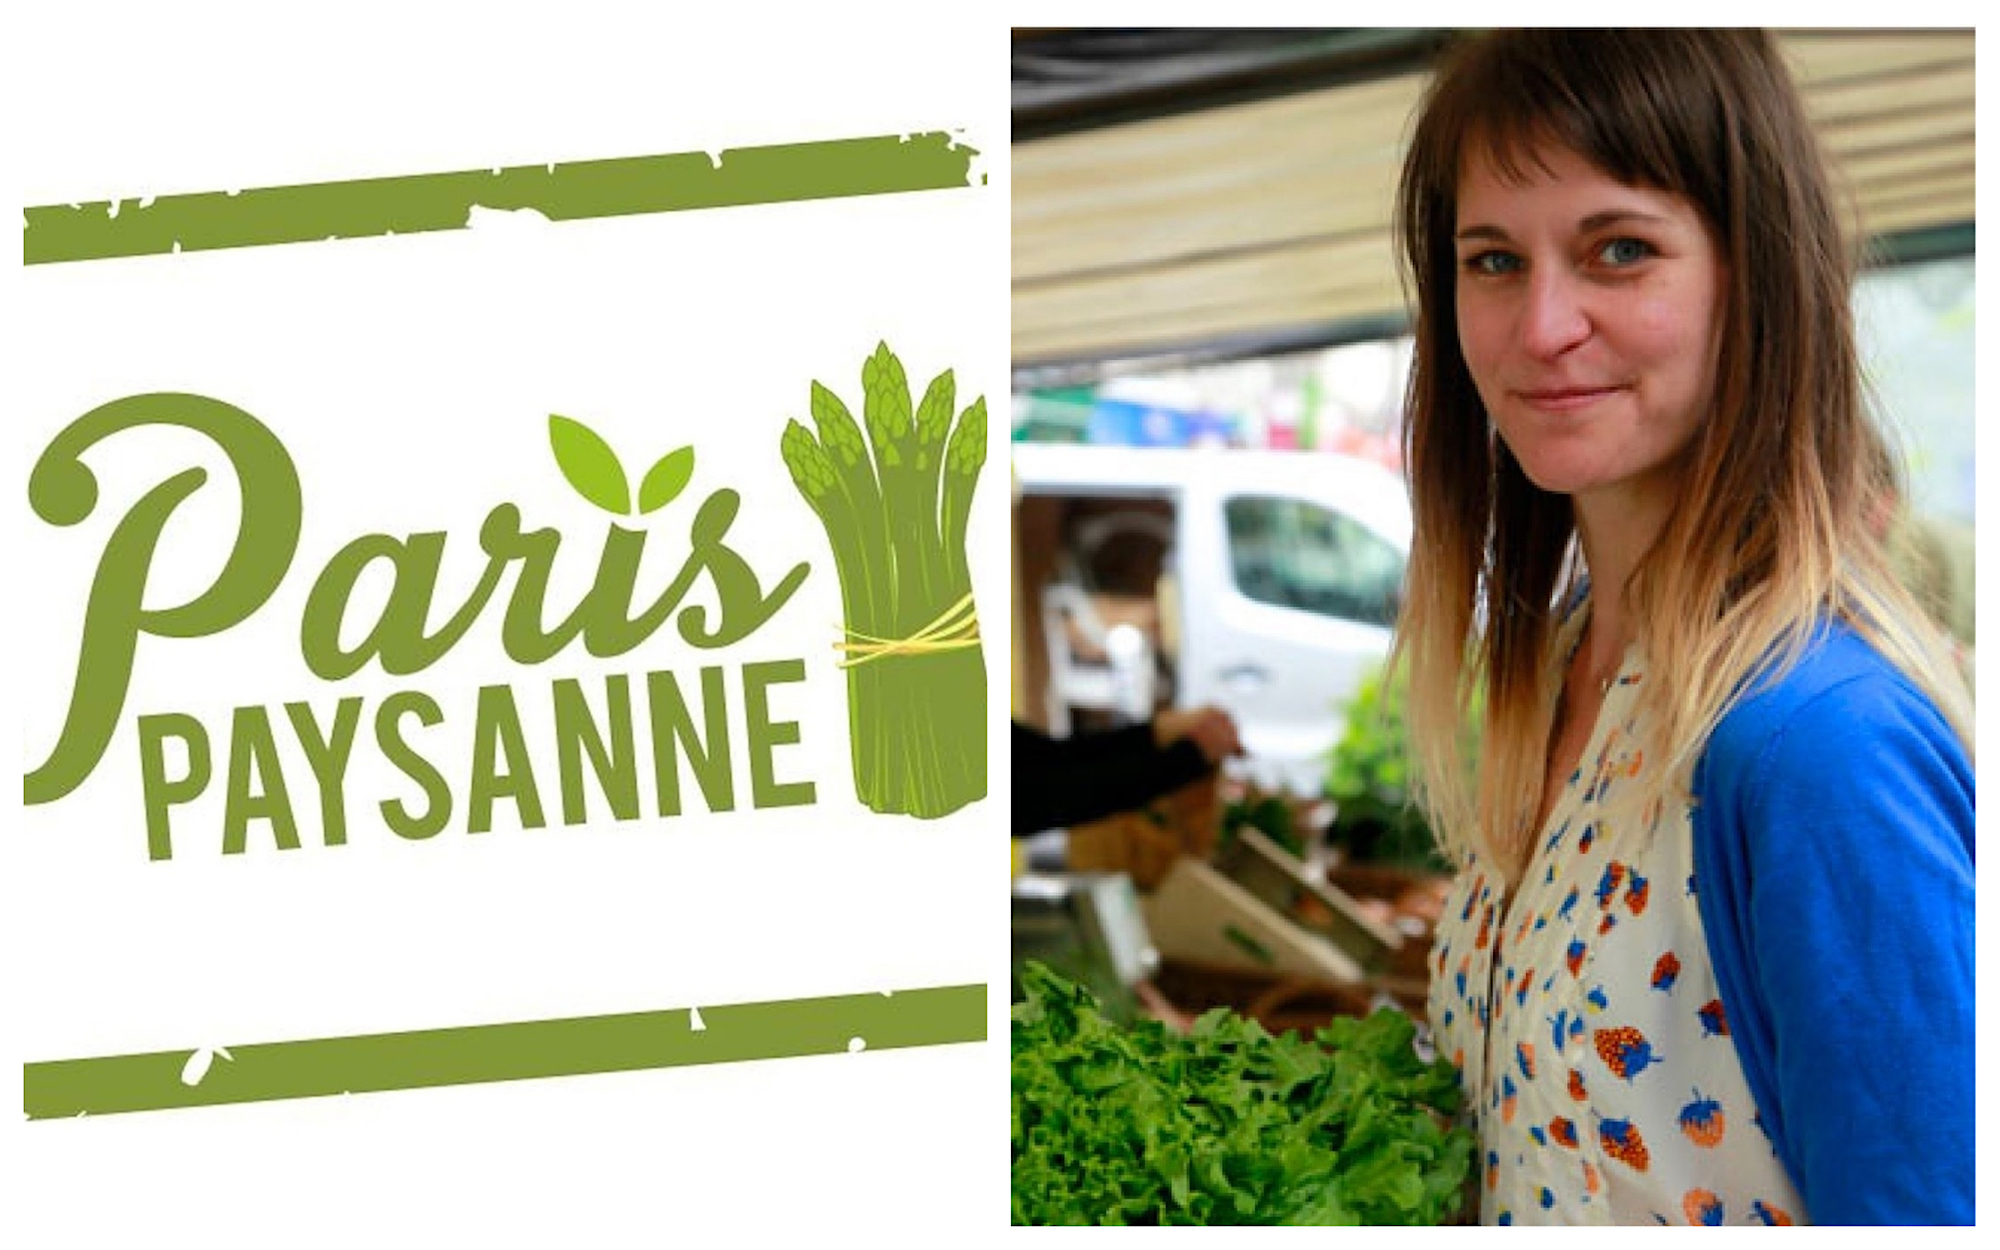 HiP Paris Blog rounds up the best Paris podcasts including Emily Dilling's Paris Paysanne show about eating in Paris. A poster for her shows (left) and a portrait of Emily at a market (right).